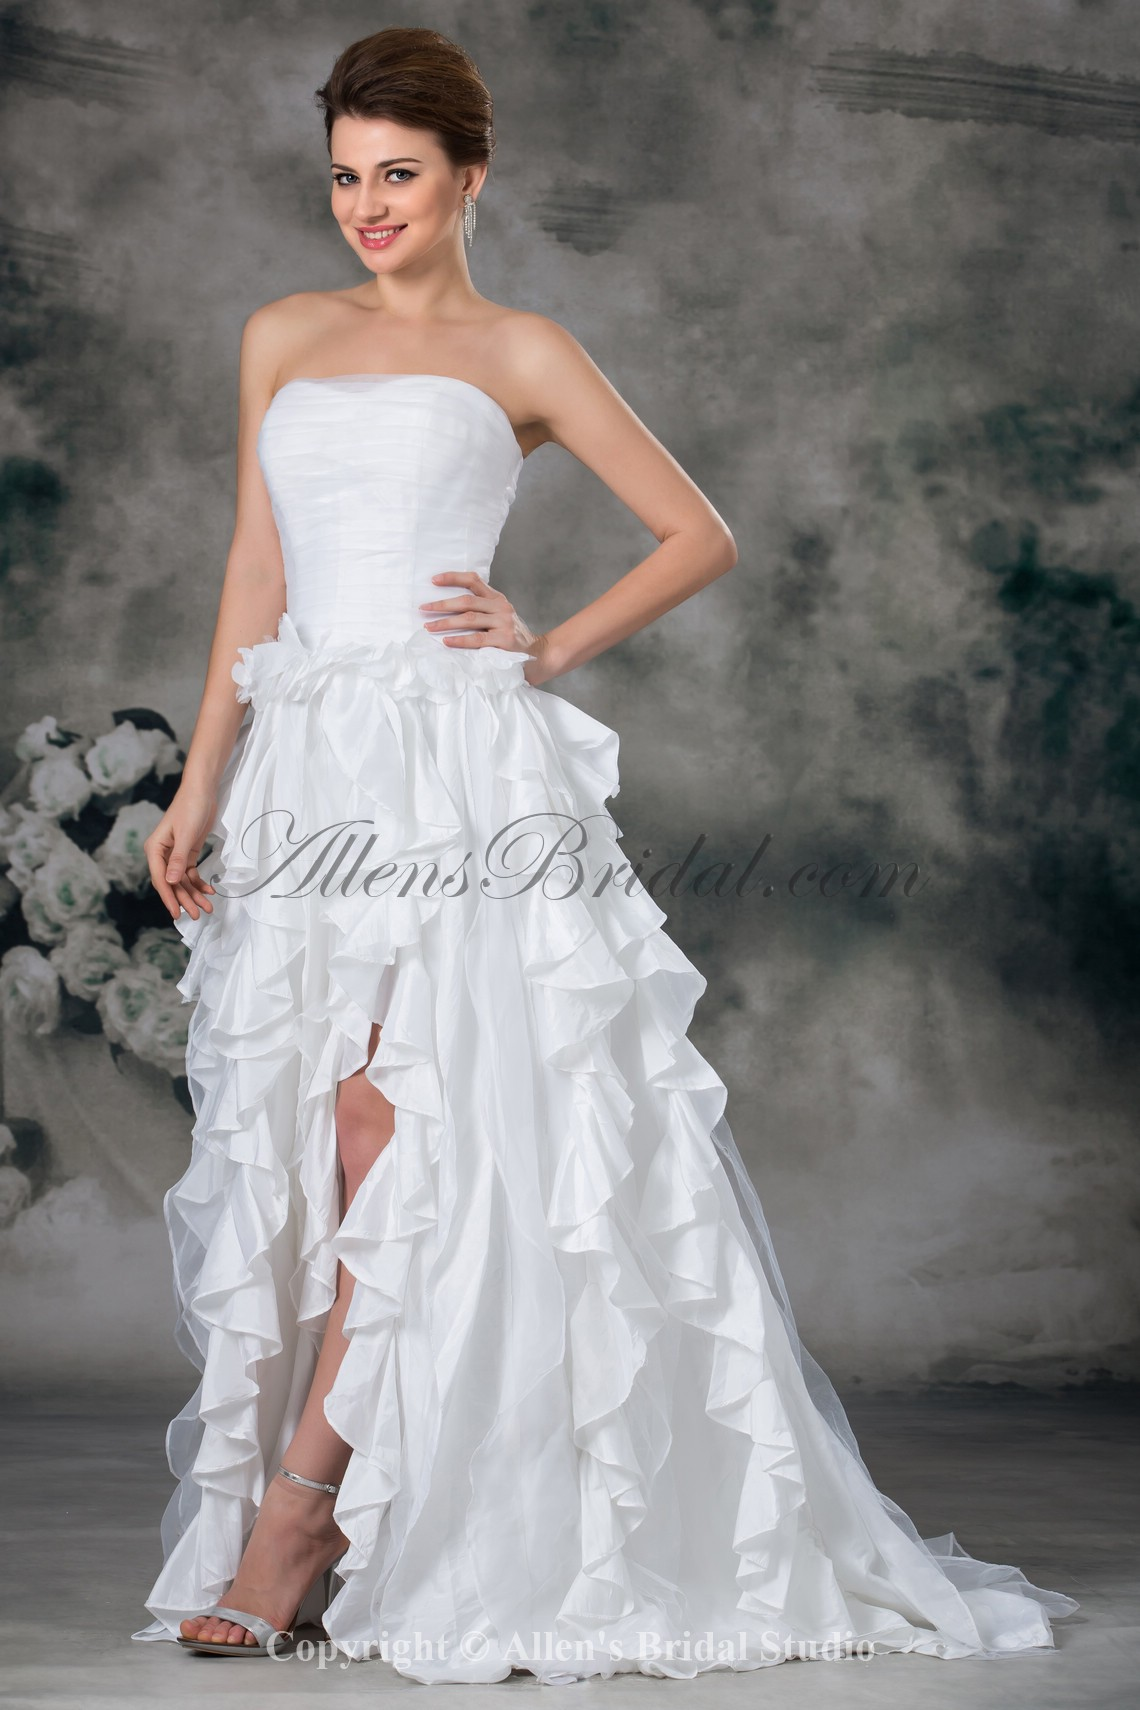 /941-7543/taffeta-sweetheart-neckline-sweep-train-a-line-wedding-dress.jpg